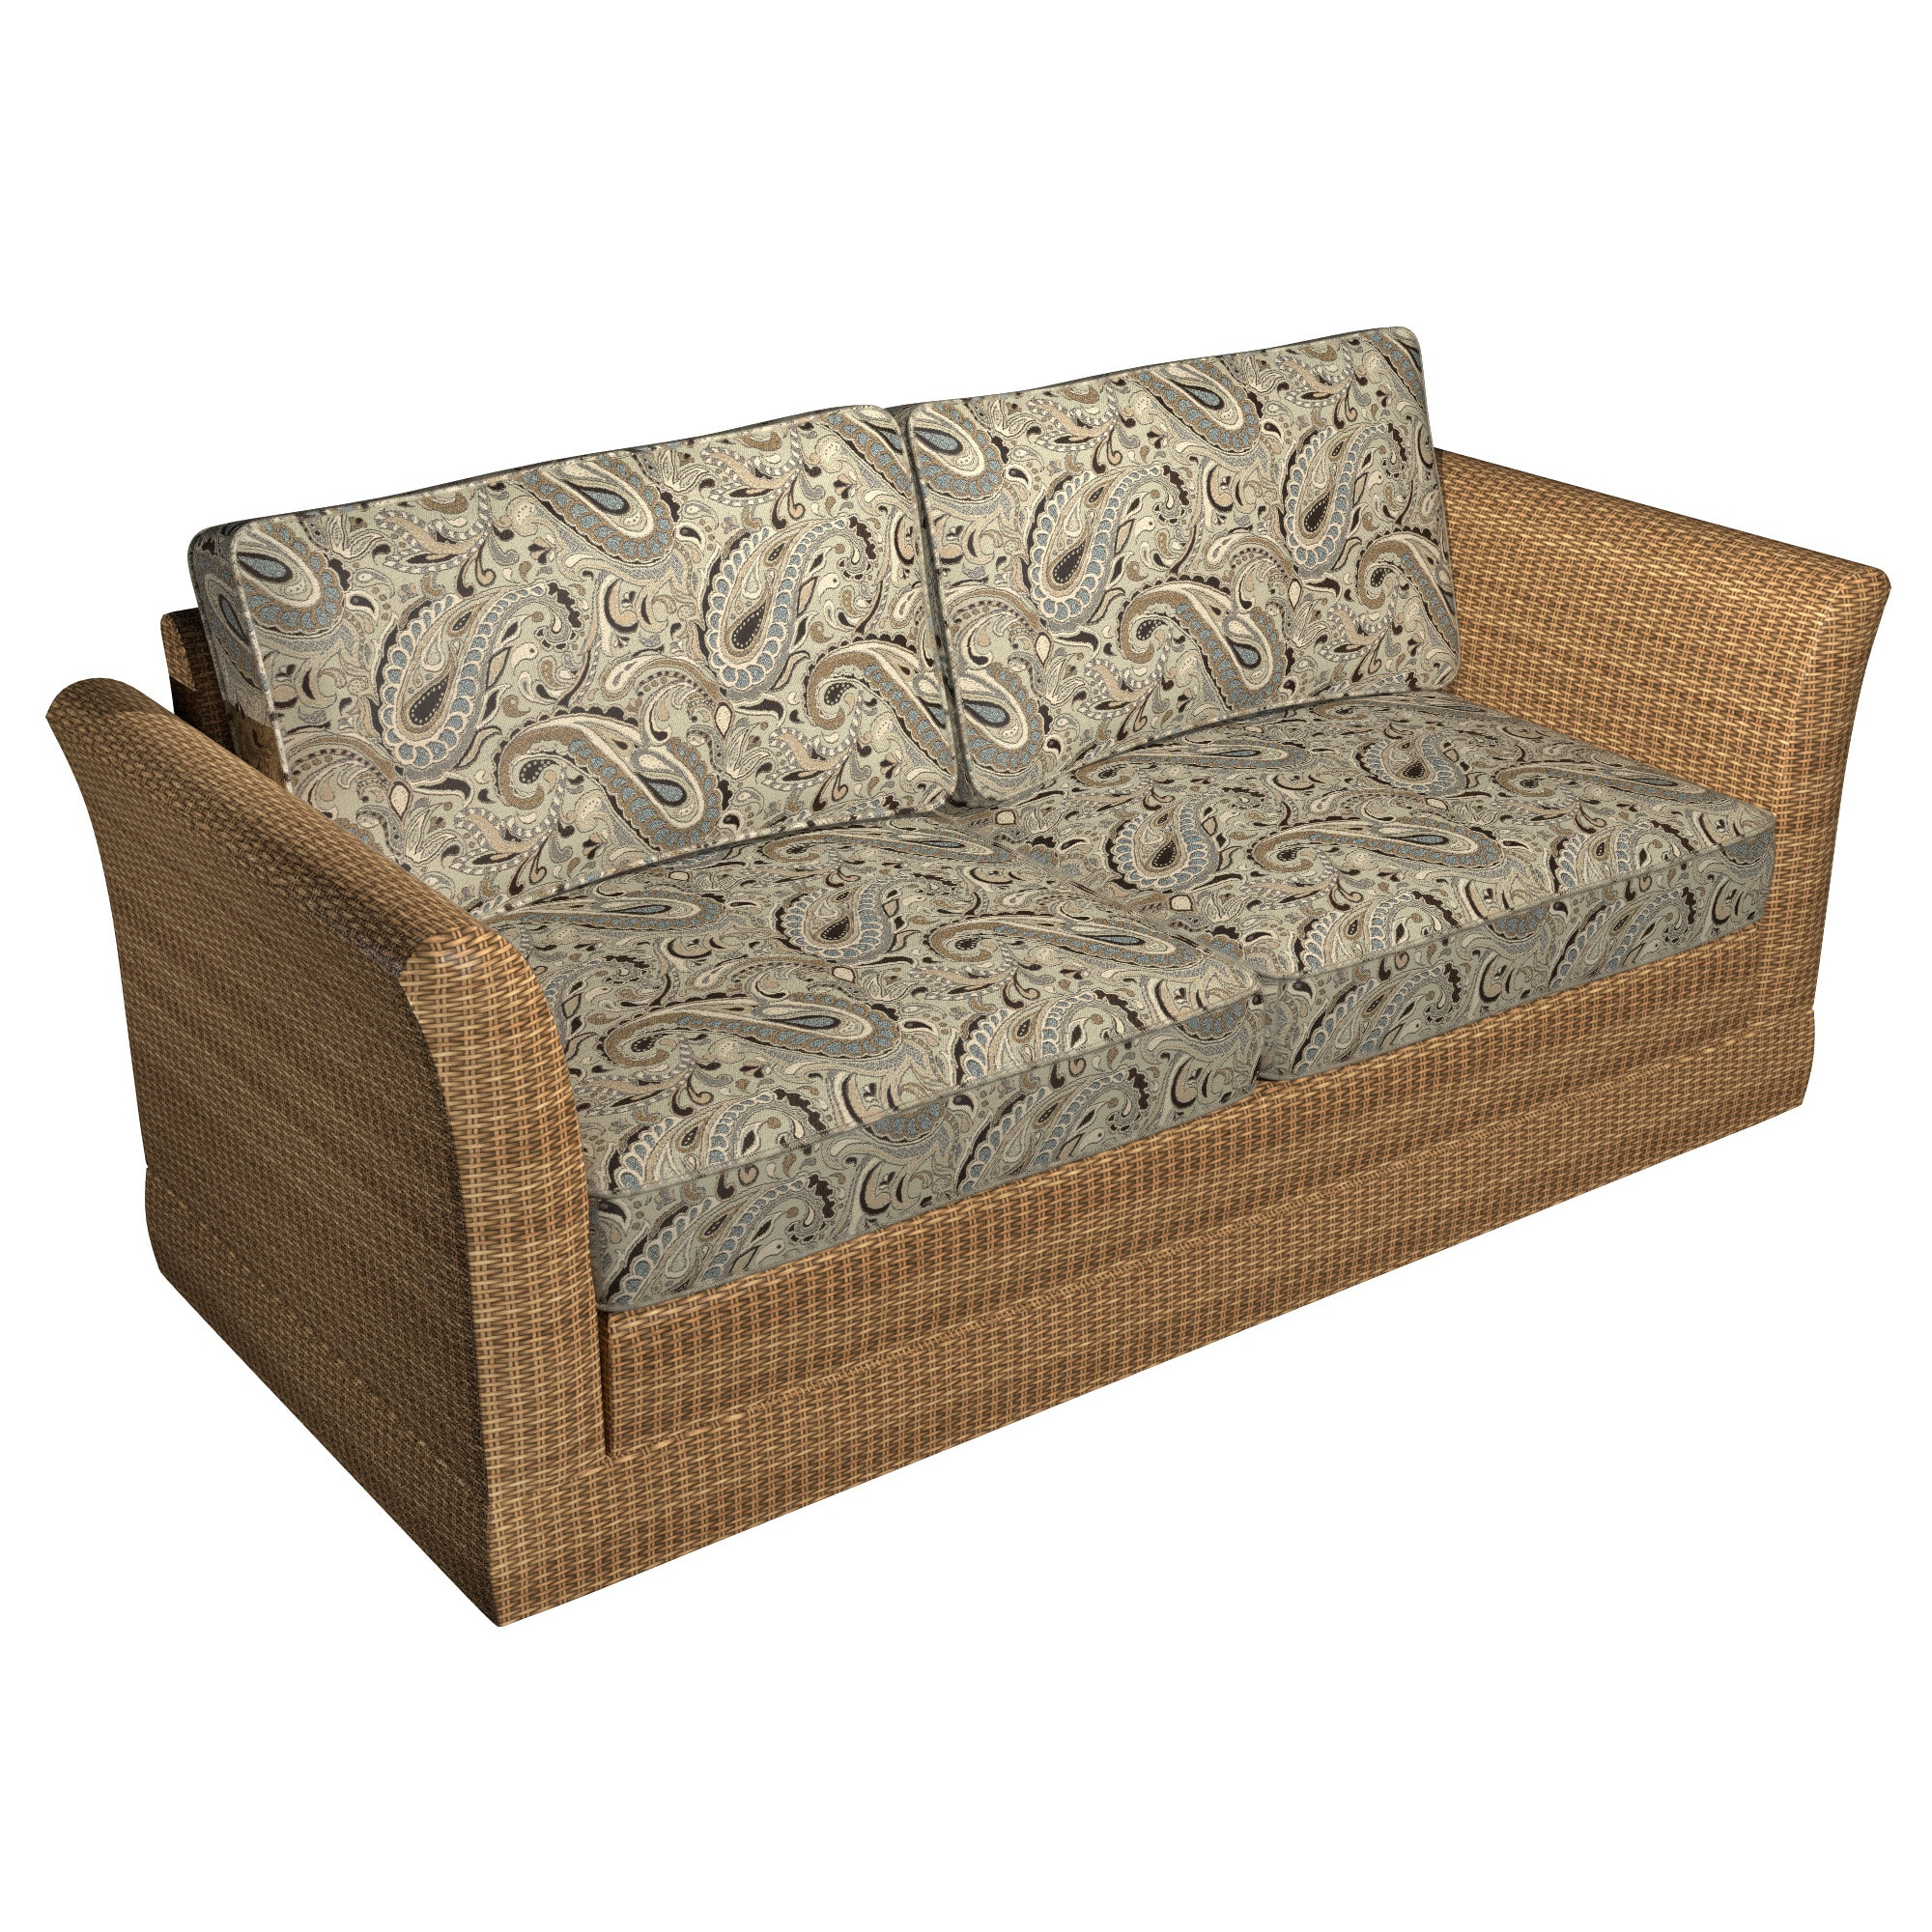 Shop A0110A Brown Blue Tan Paisley Woven Indoor Outdoor Upholstery ...